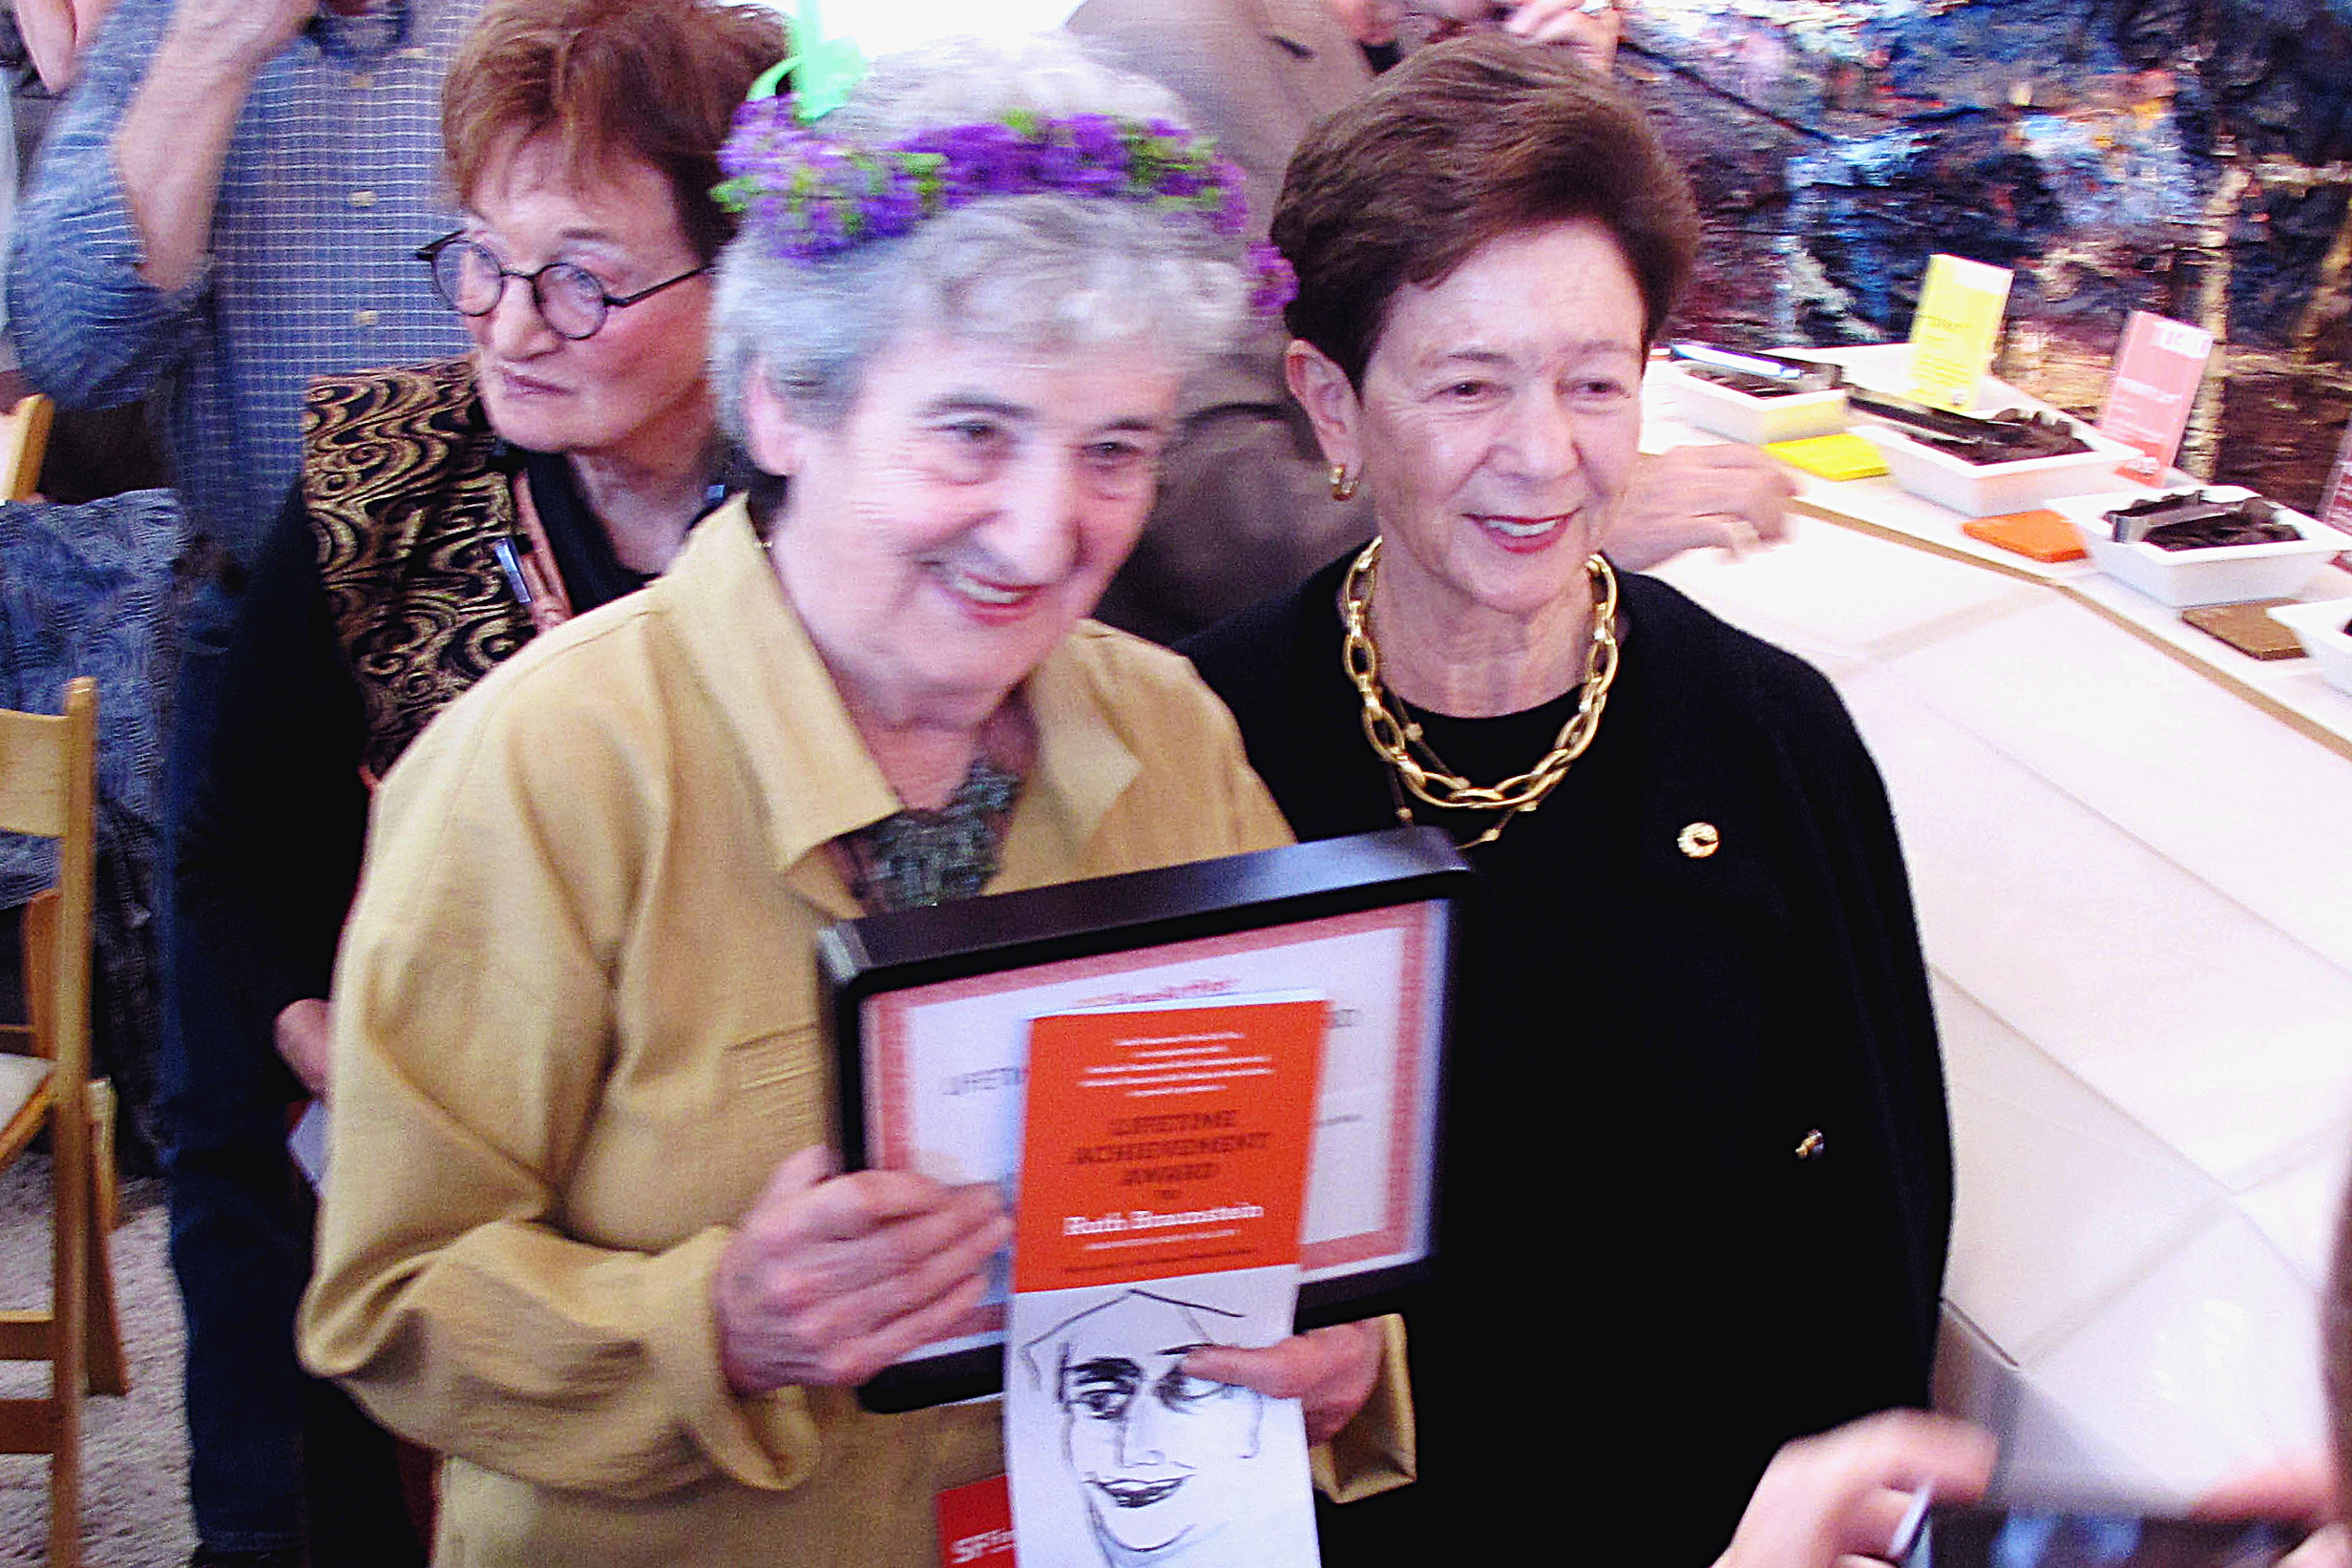 Cissie Swig with Ruth Braunstein receiving a lifetime achievement award, May 20th 2010.